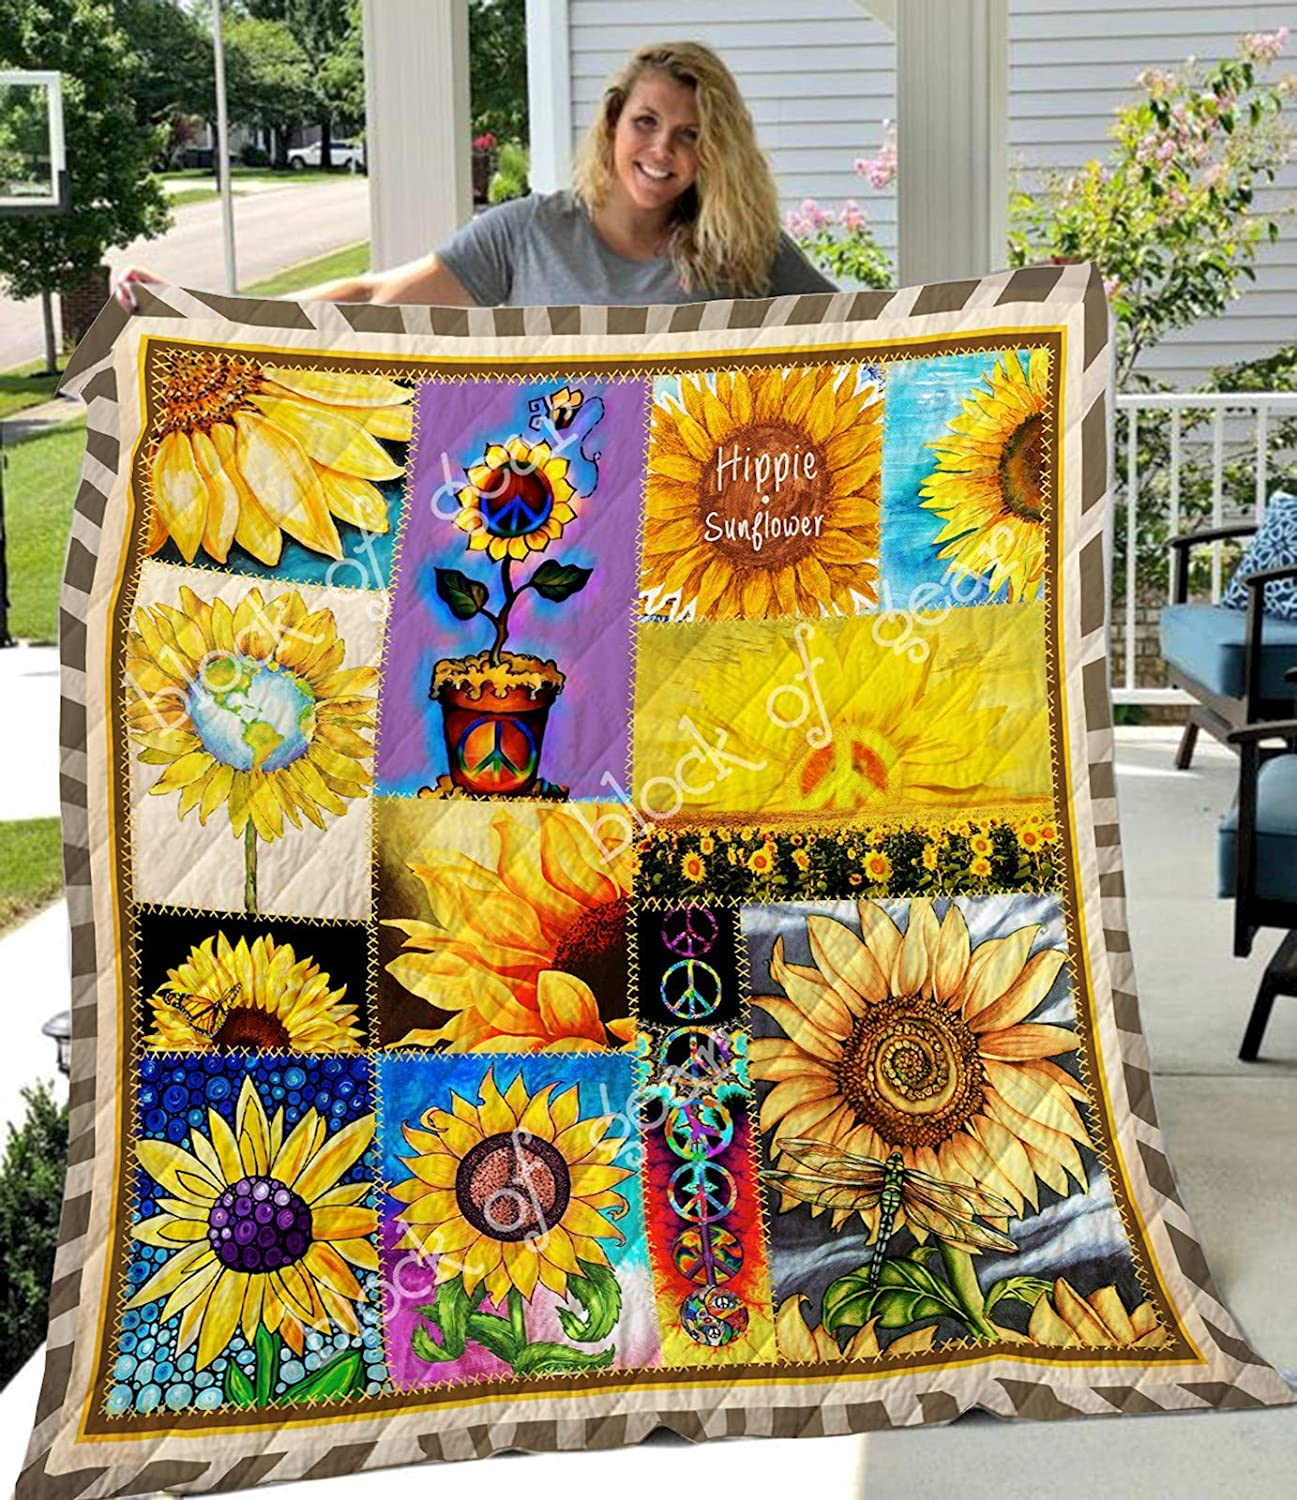 Hippie Sunflower Quilt TH690, Queen All-Season Quilts Comforters with Reversible Cotton King Queen Twin Size - Best Decorative Quilts-Unique Quilted for Gifts